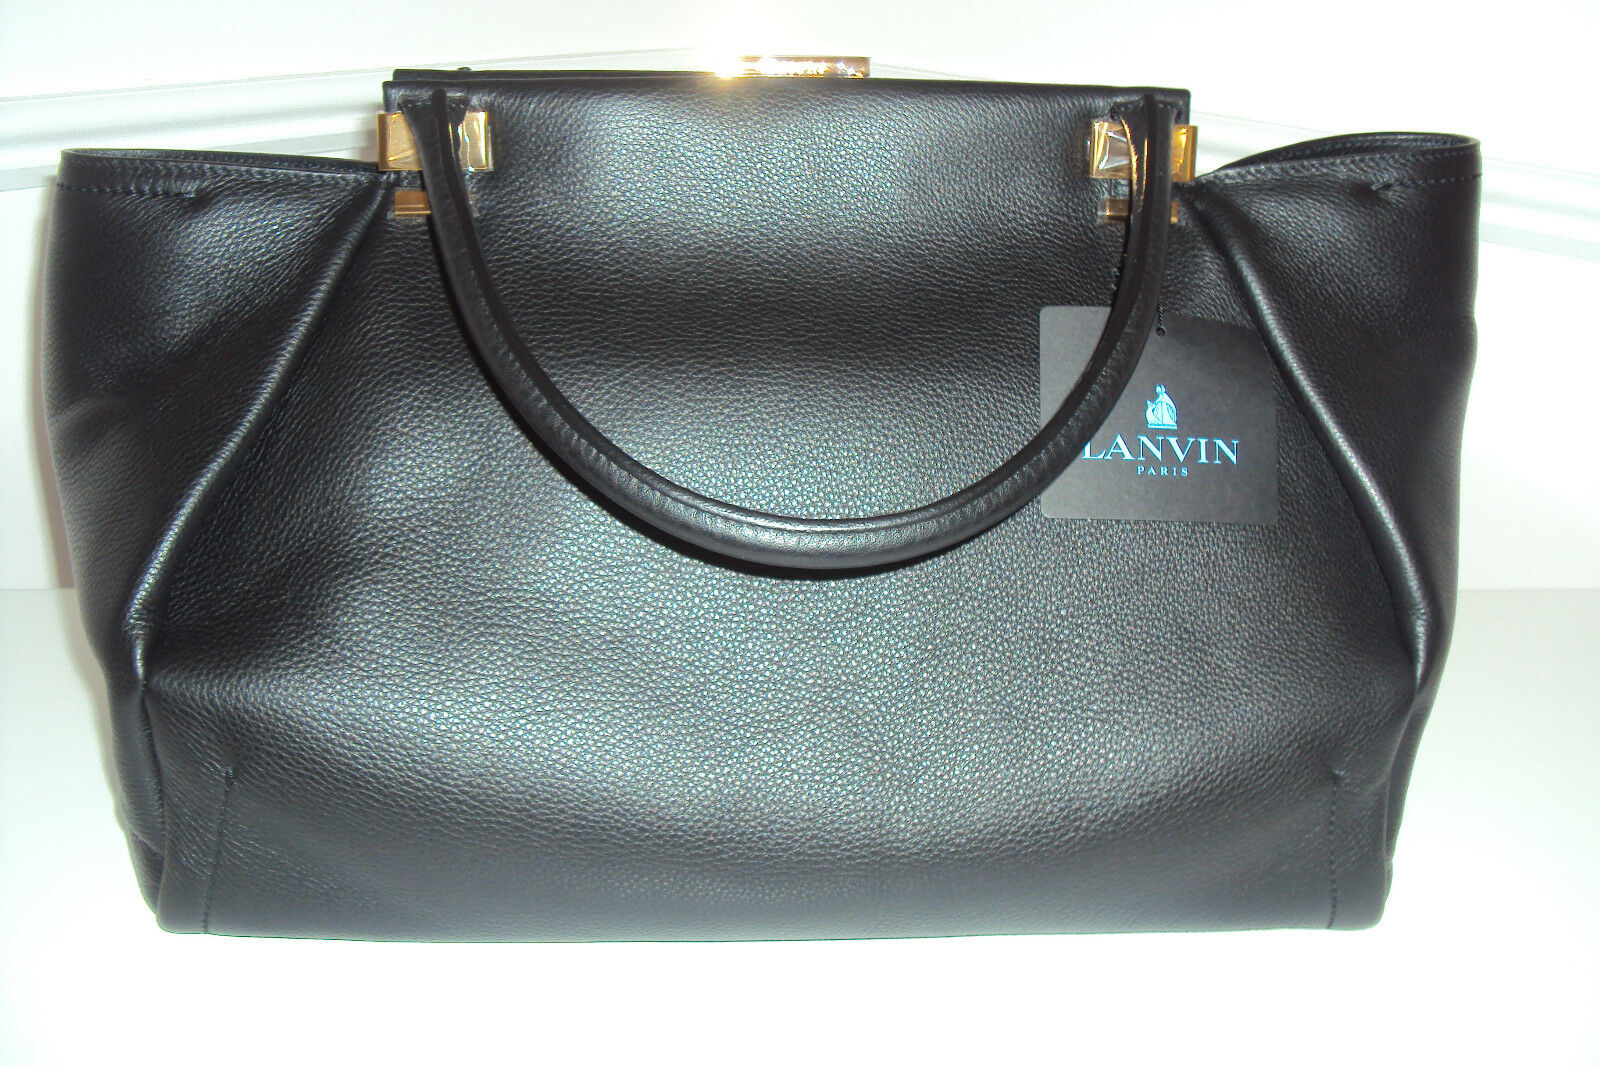 LANVIN TRILOGY HANDBAG LARGE SIZE  NWT + RECEIPT FOR $2,500.00